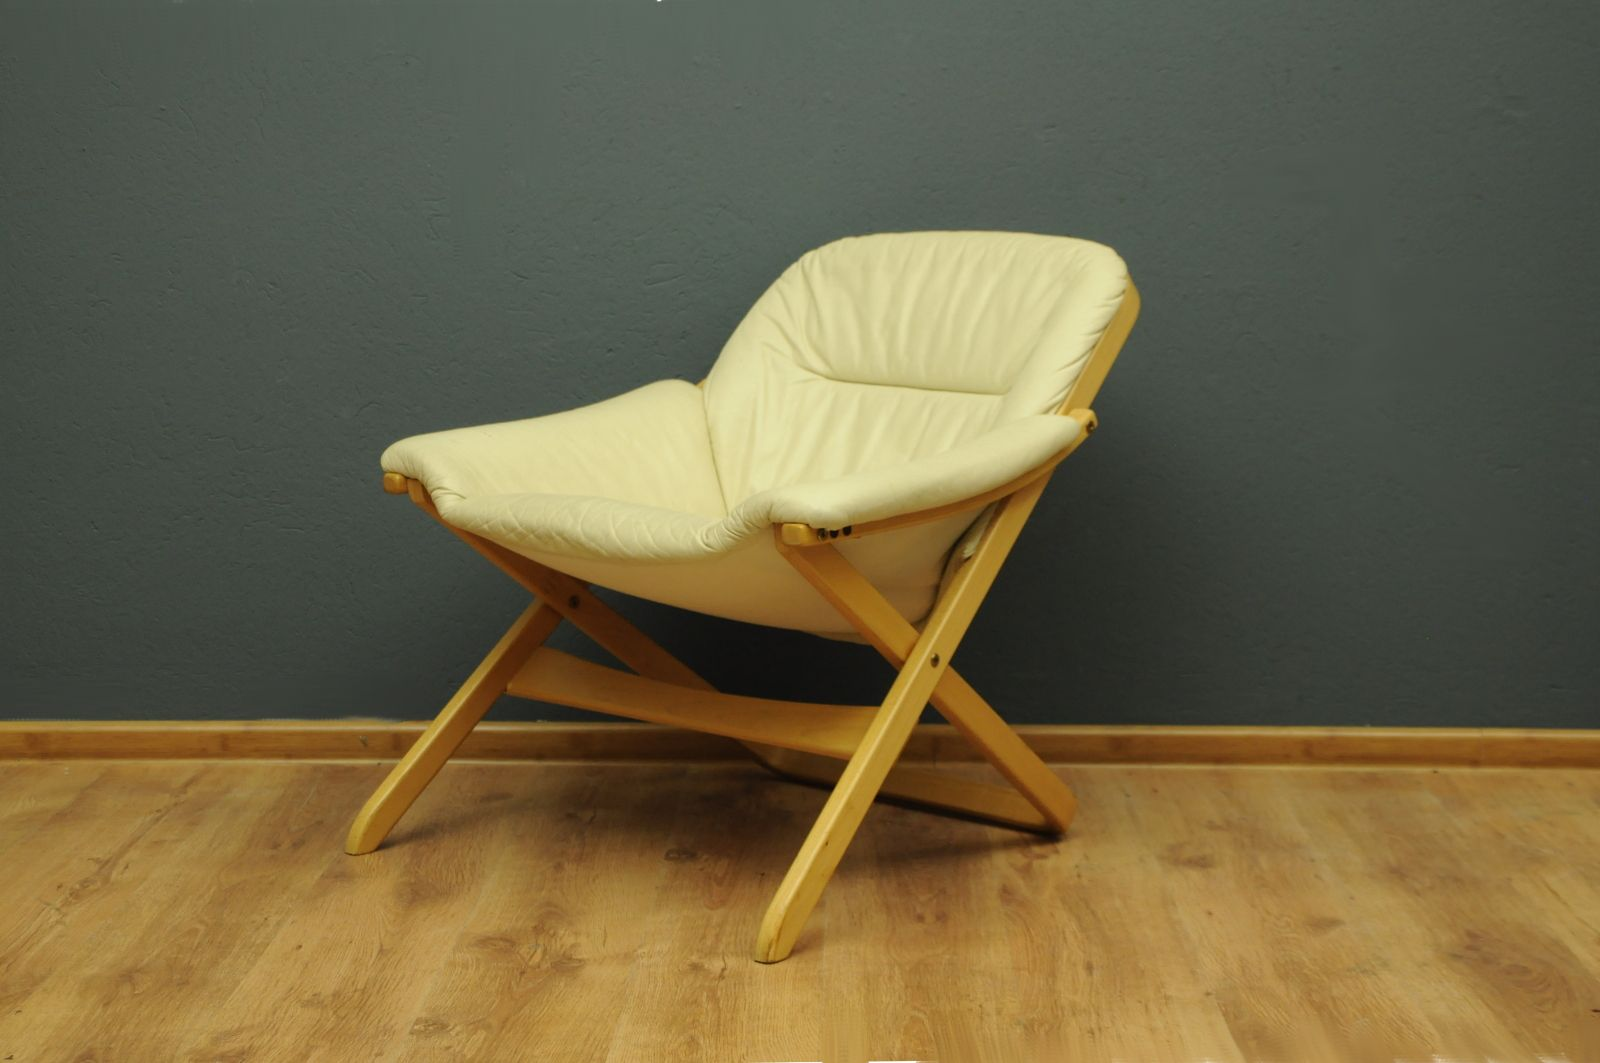 vintage swedish lounge chair from g m bel for sale at pamono. Black Bedroom Furniture Sets. Home Design Ideas